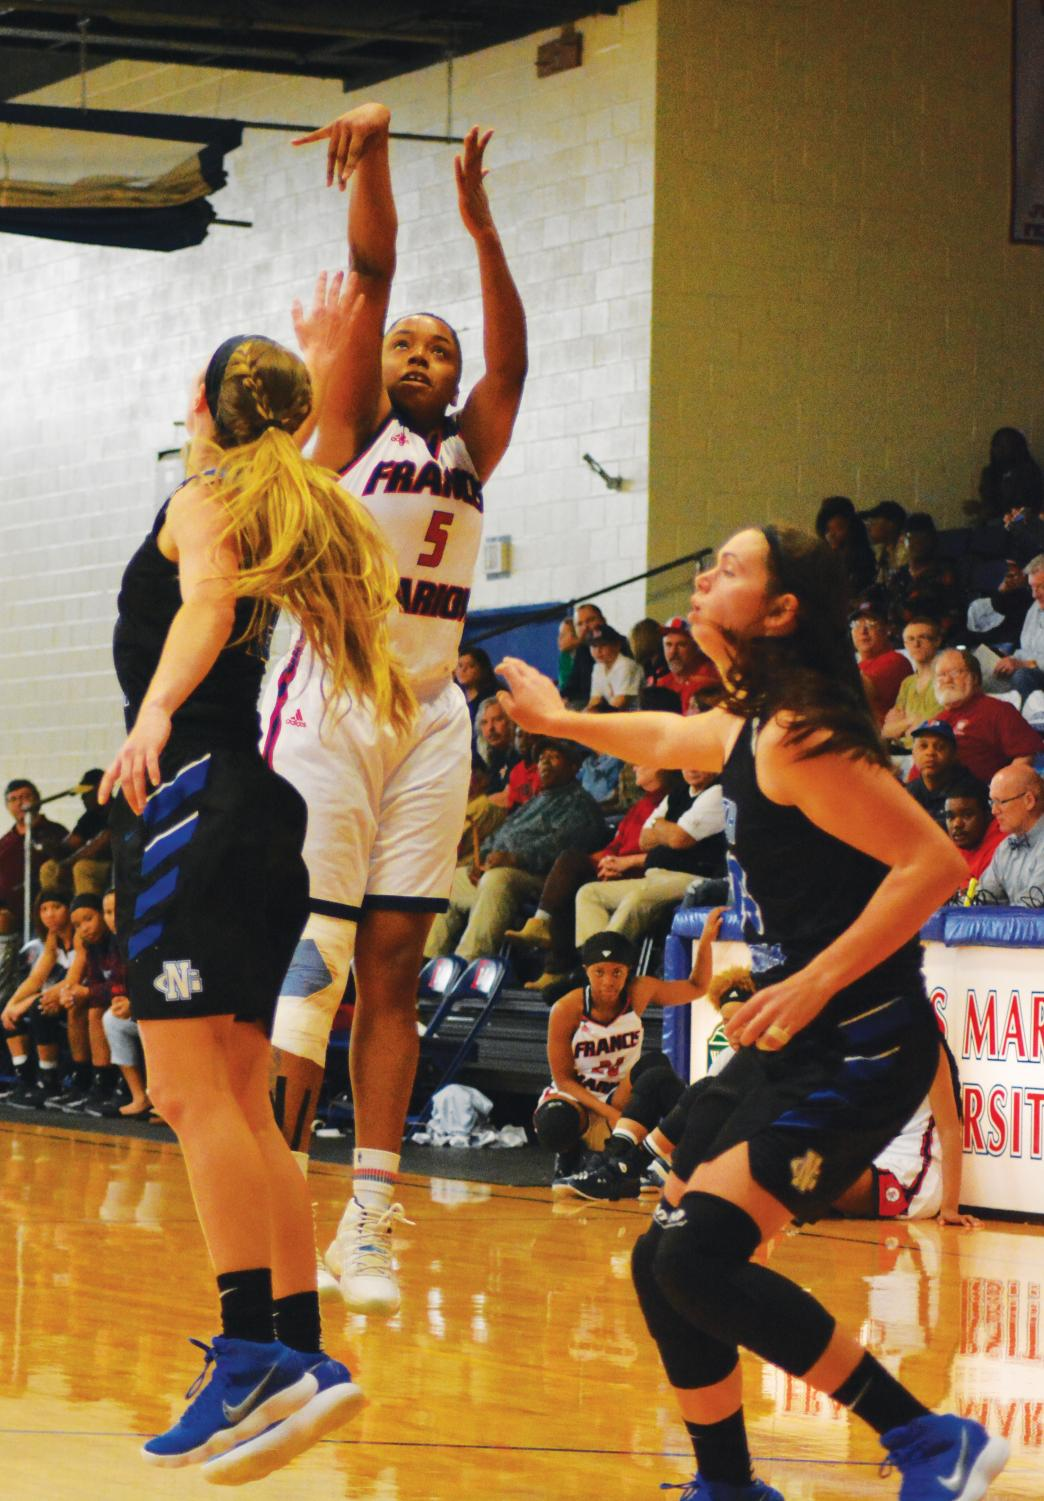 Keauna Williams, junior, shoots and scores against the lady Nighthawks from University of North Georgia.